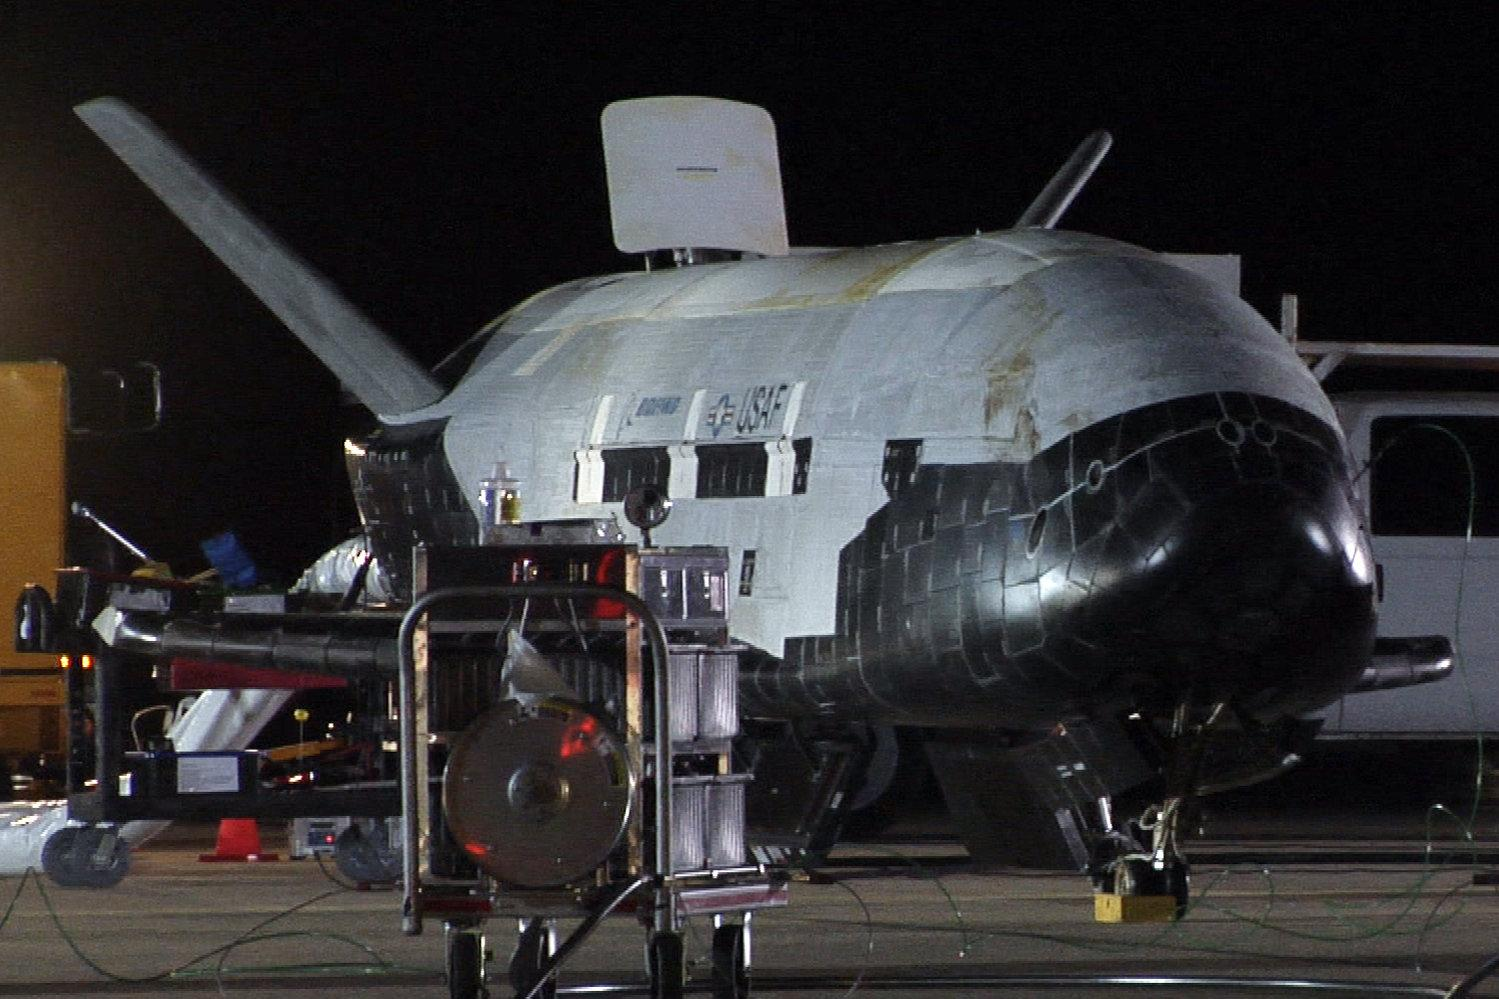 USA launches a secret spaceship today